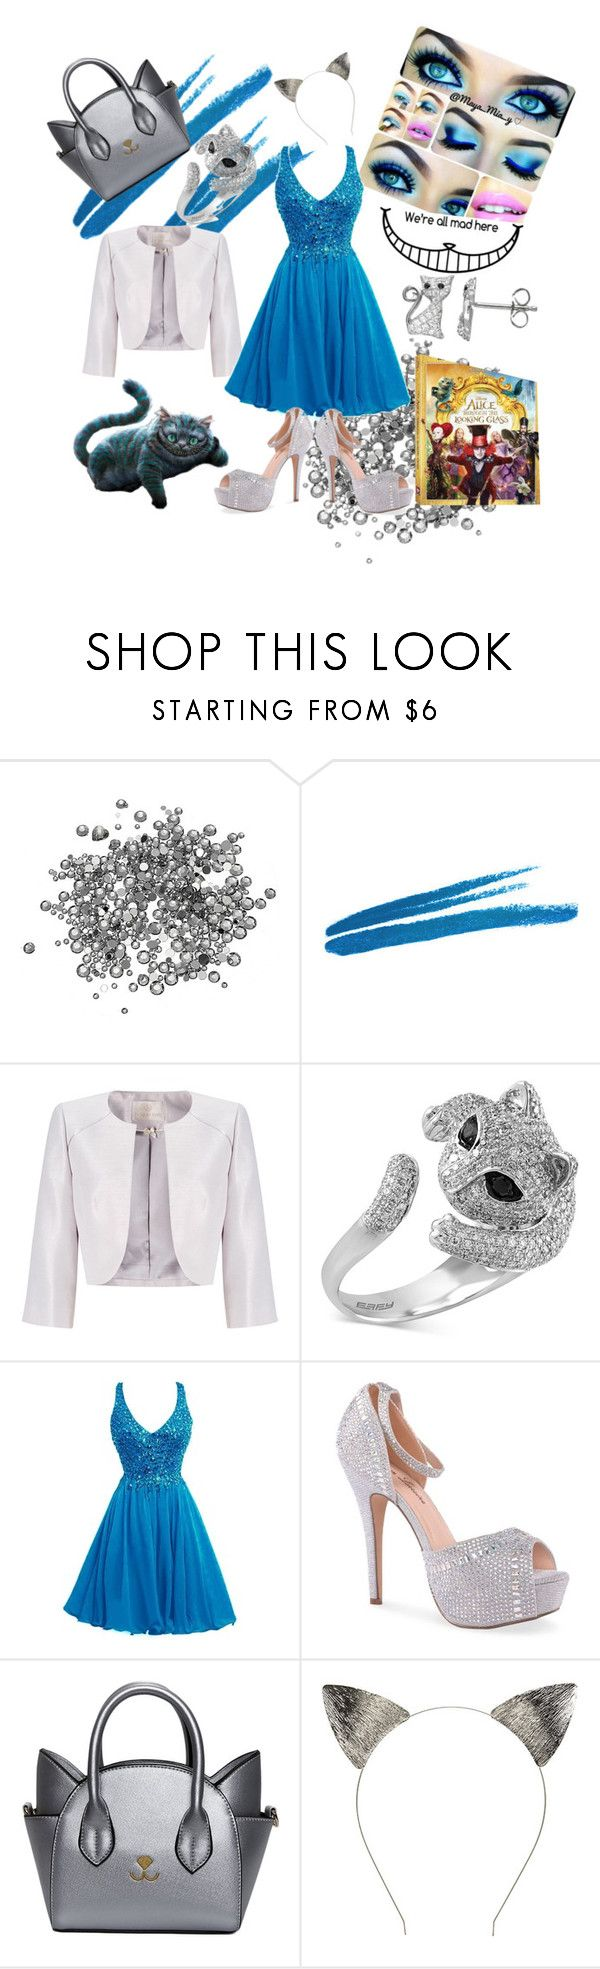 """Cheshire"" by nemfalco ❤ liked on Polyvore featuring Jacques Vert, Effy Jewelry, Lauren Lorraine, WALL, contestentry, cheshirecat and DisneyAlice"